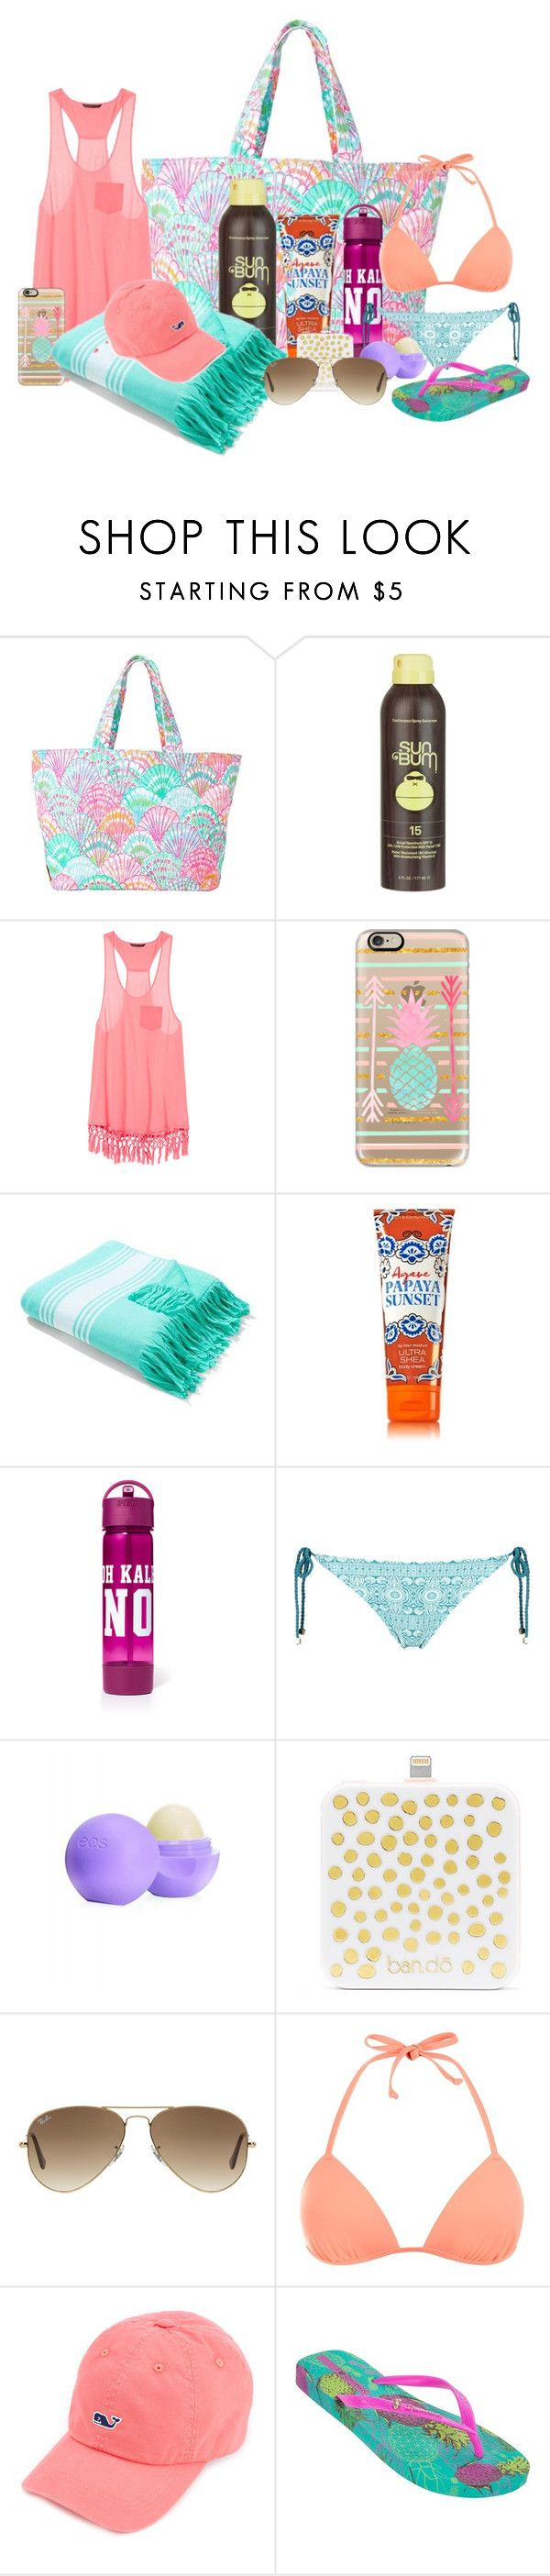 """what's in my beach bag"" by kendrajc ❤ liked on Polyvore featuring Lilly Pulitzer, Sun Bum, Victoria's Secret, Casetify, Topshop, Eos, BaubleBar, Ray-Ban, IPANEMA and women's clothing"